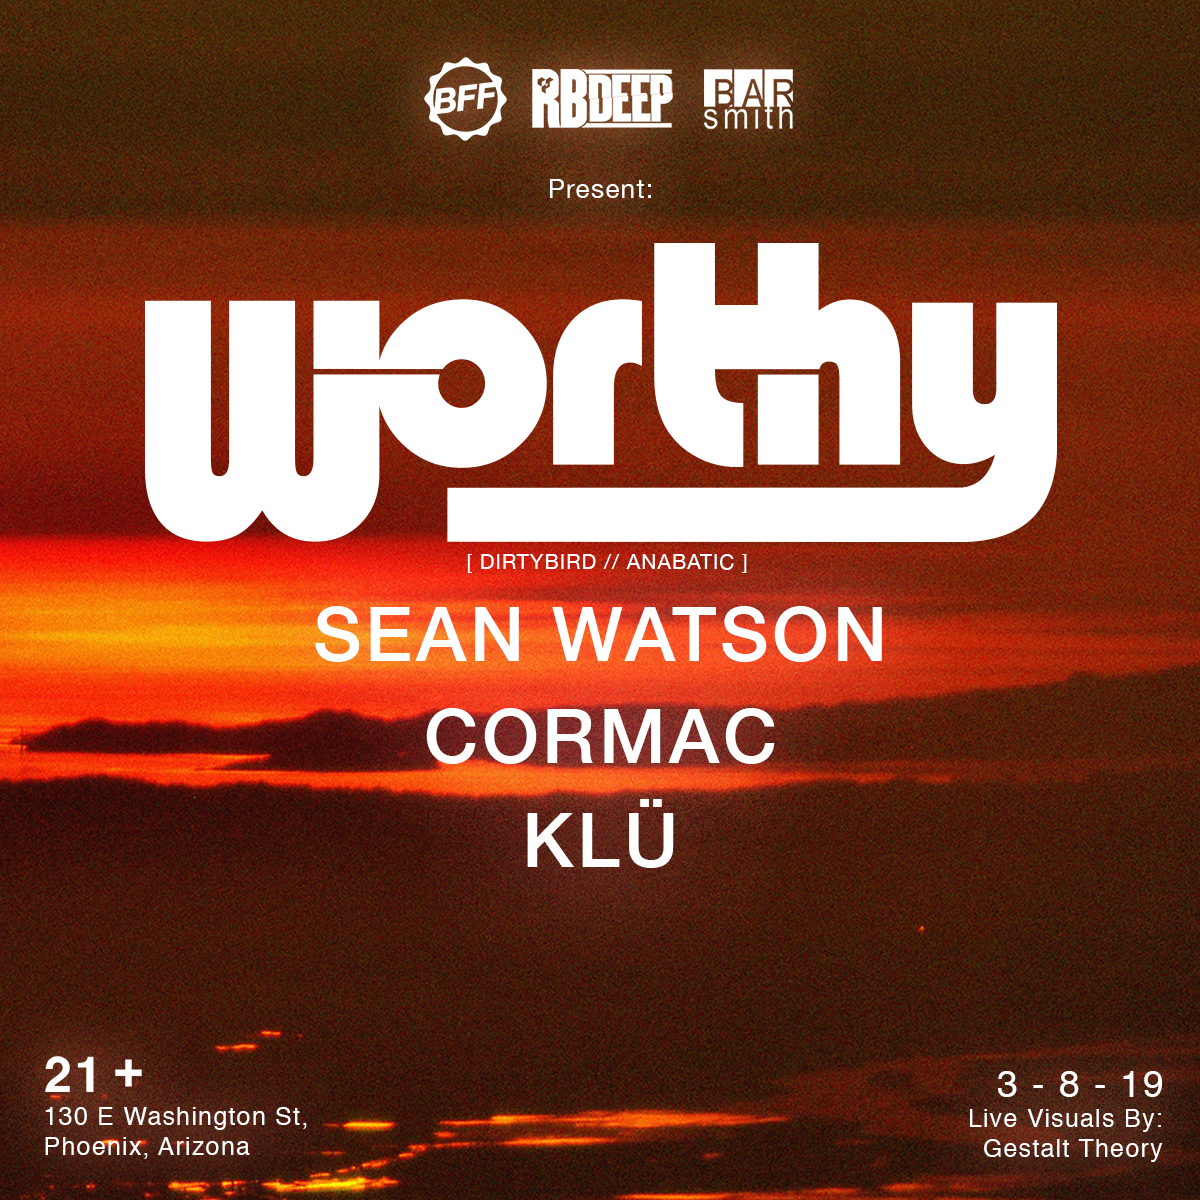 Flyer for Worthy